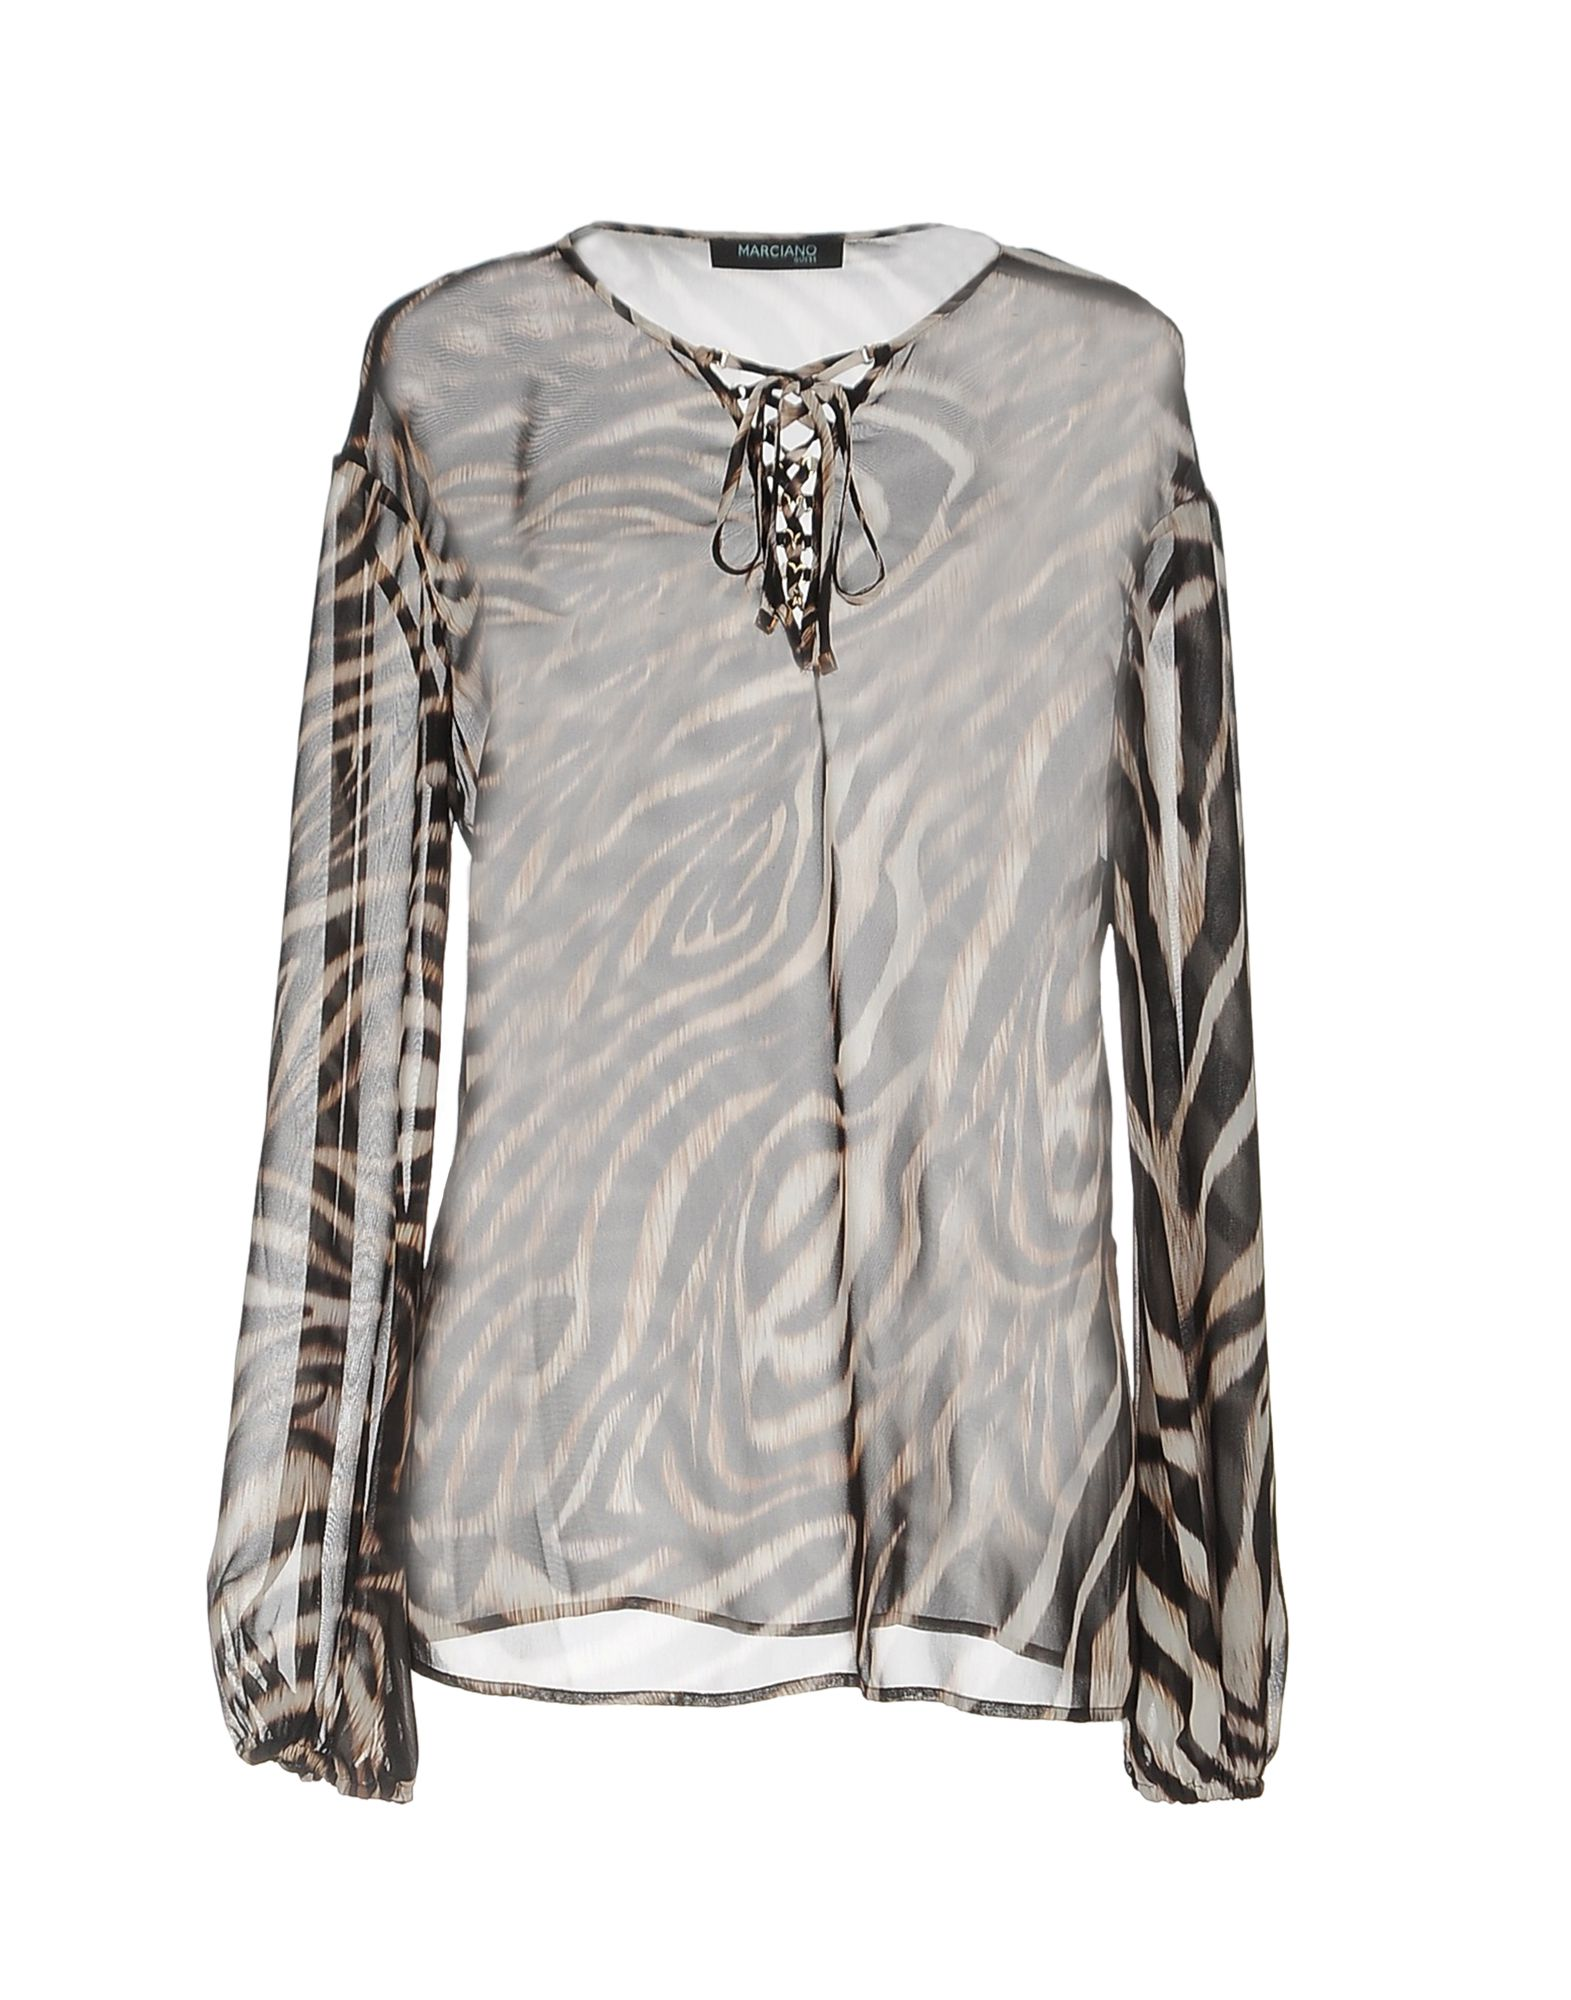 GUESS BY MARCIANO Блузка джемпер marciano guess 74g543 5356z g835